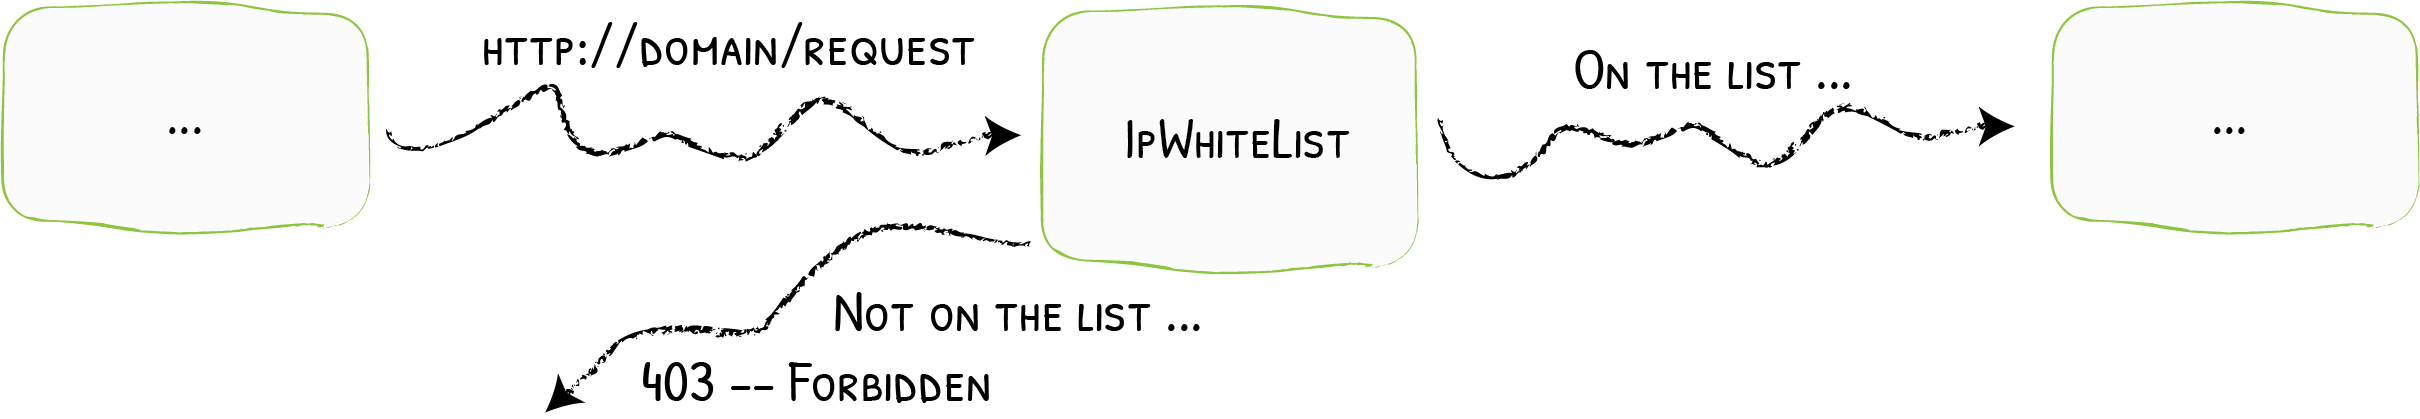 diagram showing the ip whitelist flow